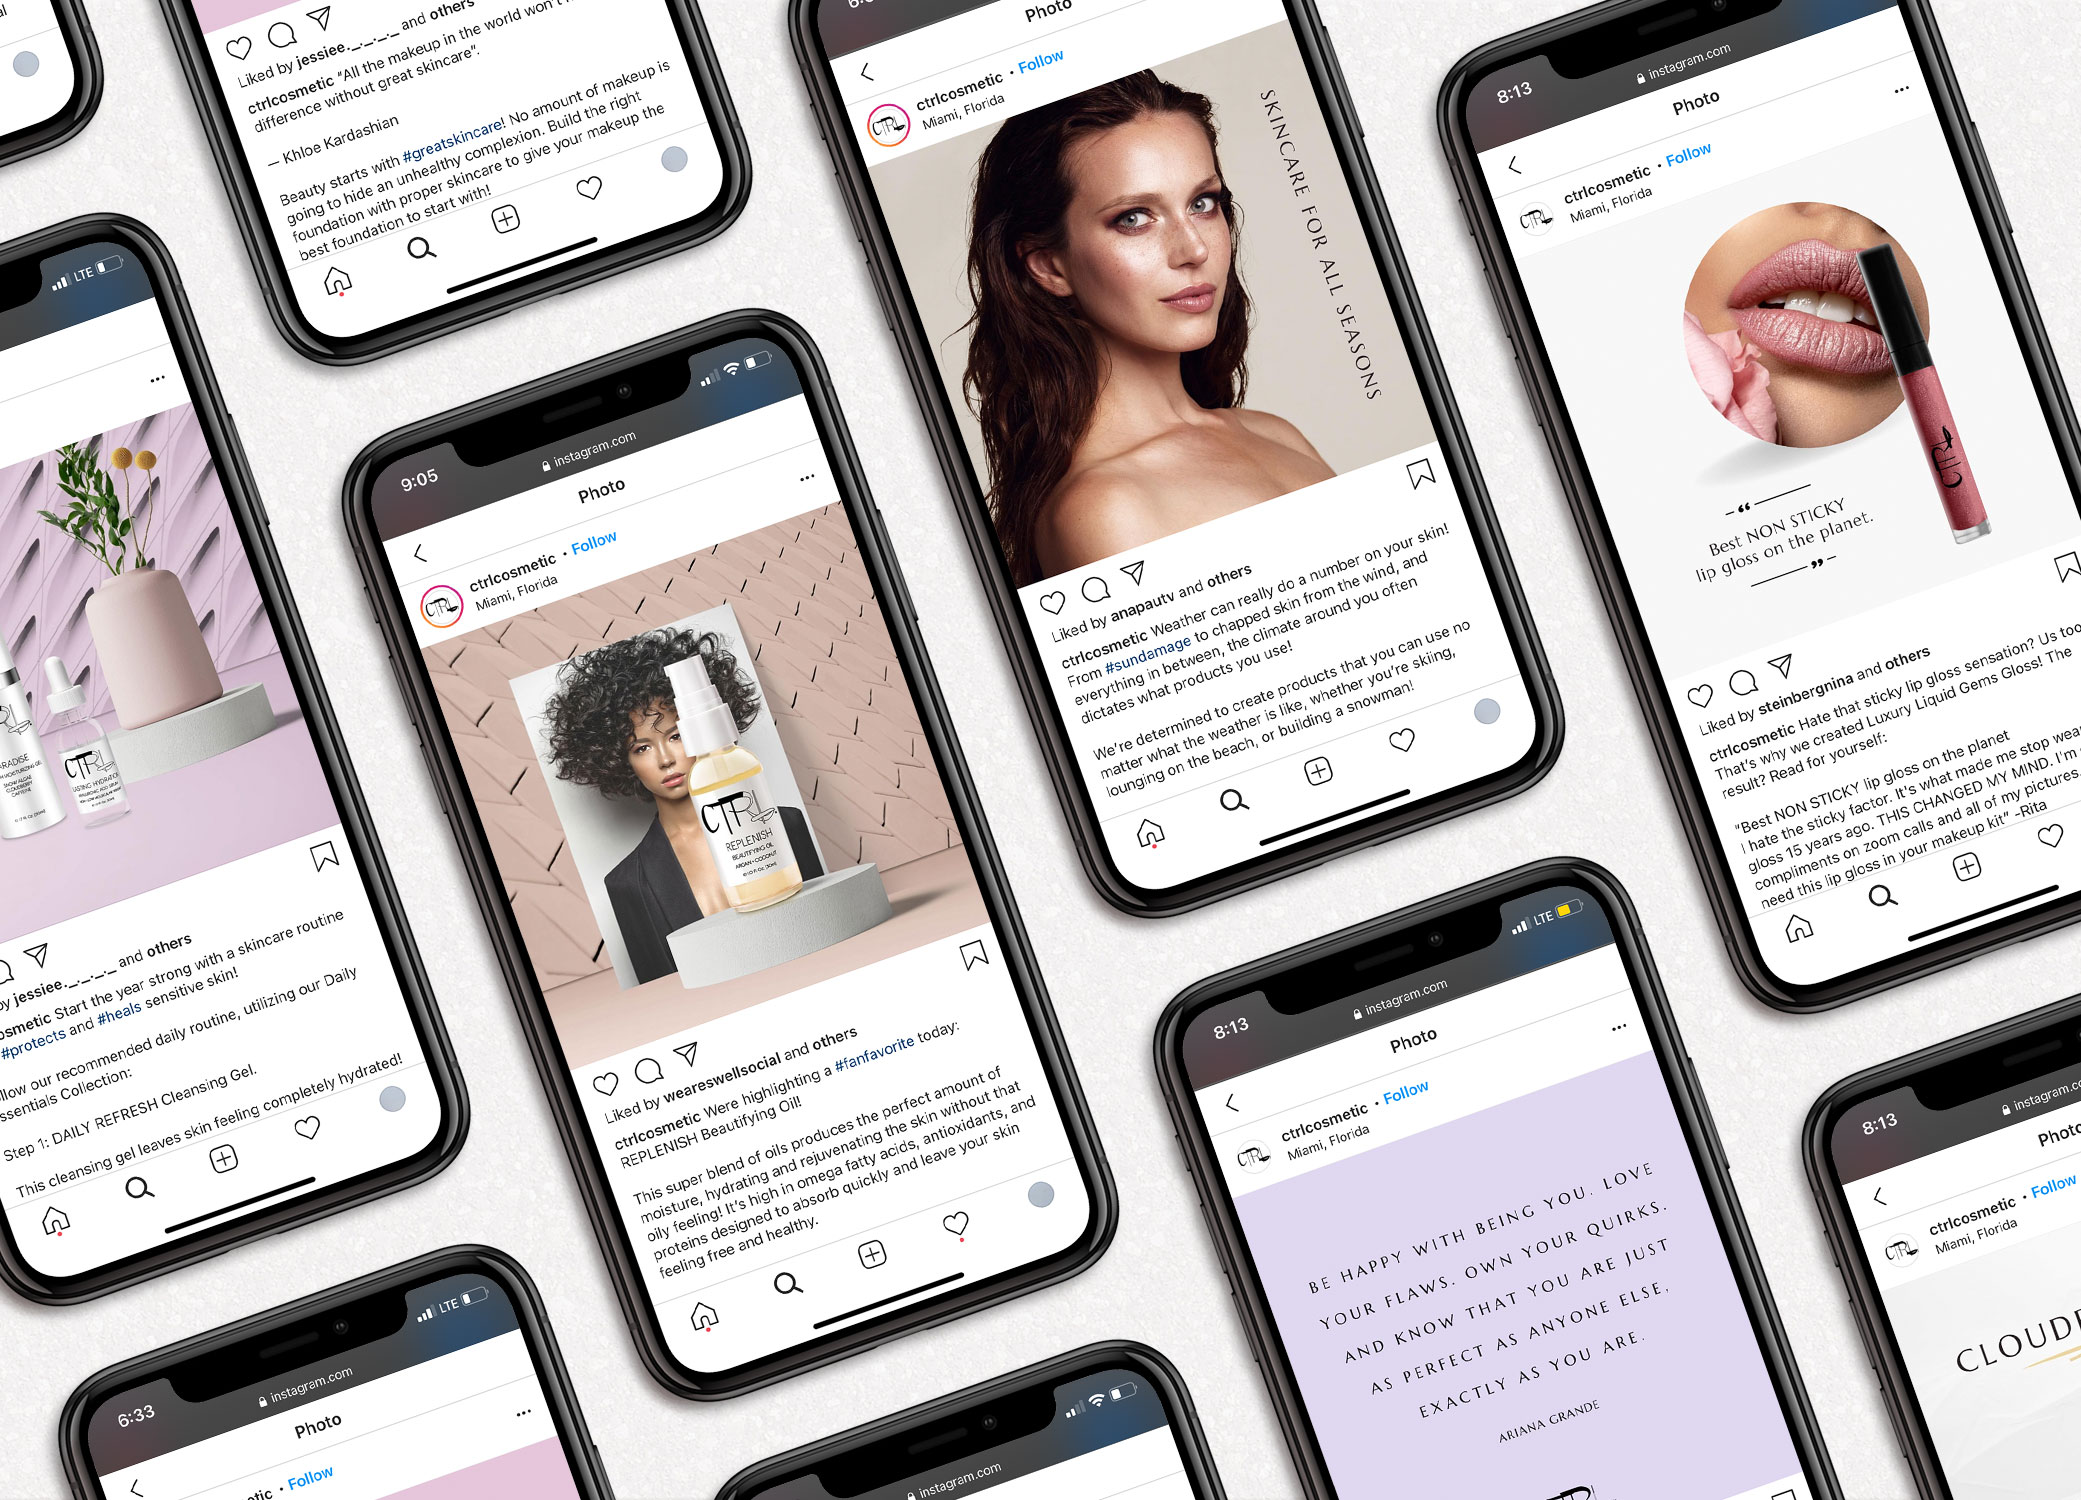 CTRL Cosmetics social media images shown on iPhones displayed in slanted rows against grey backdrop.